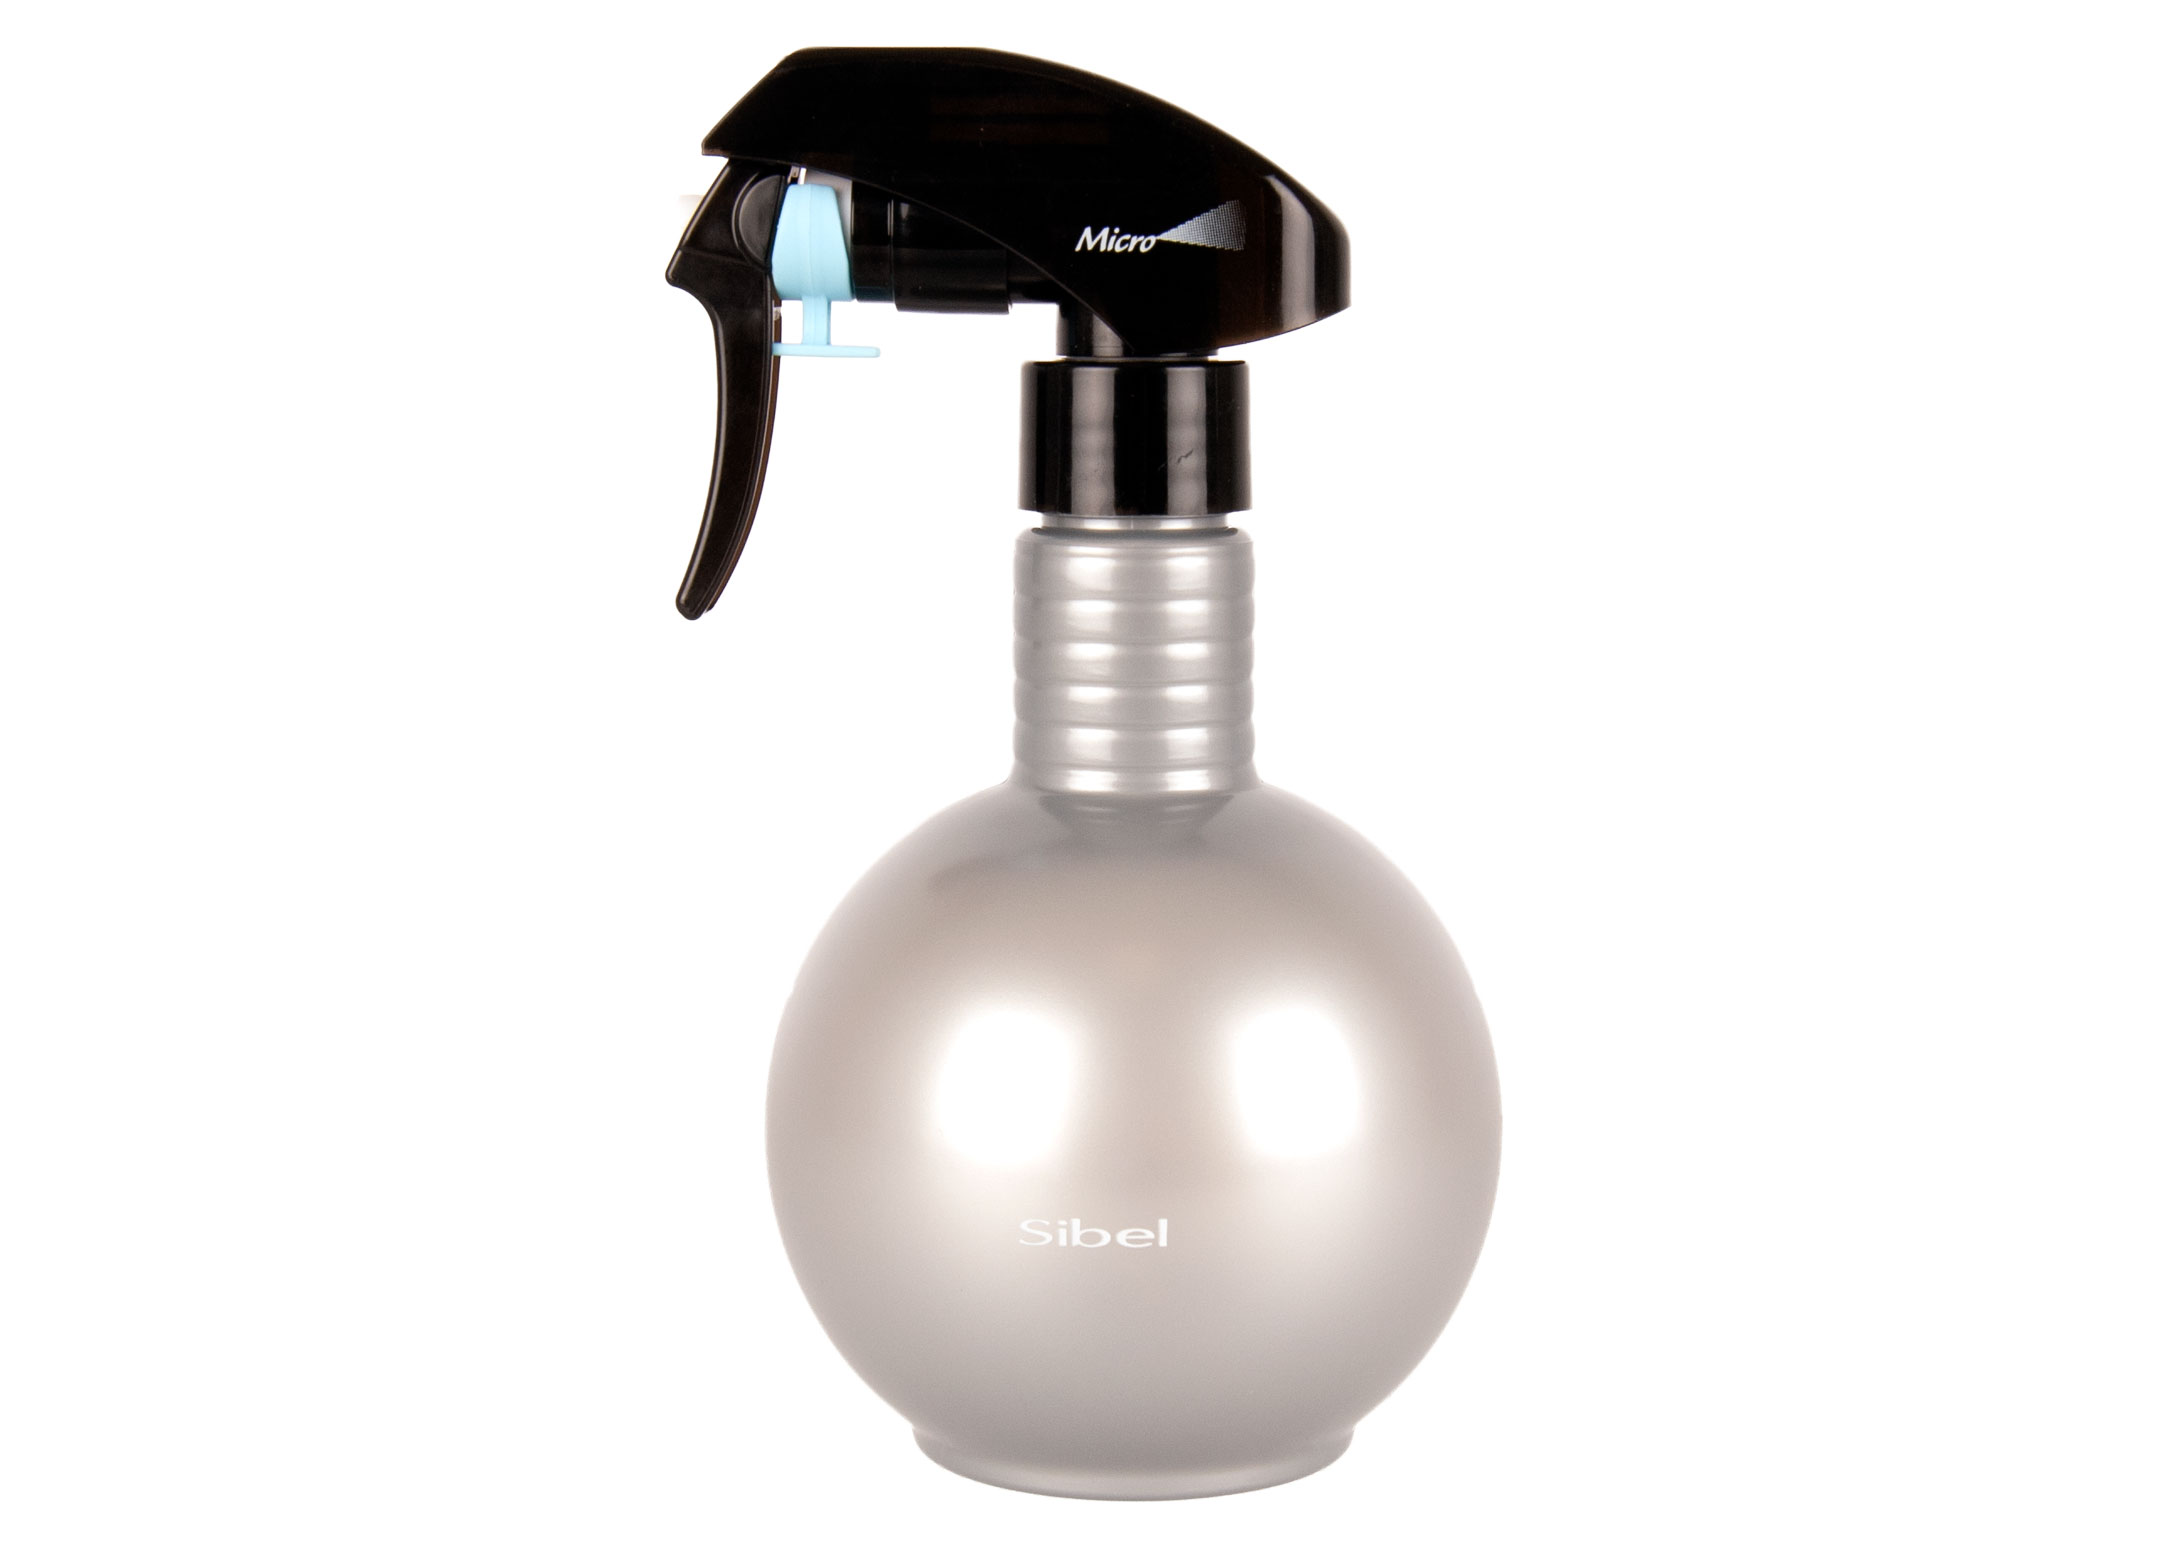 Spray Bottle Ball Zilver - 340 ml Micro Verstuiver